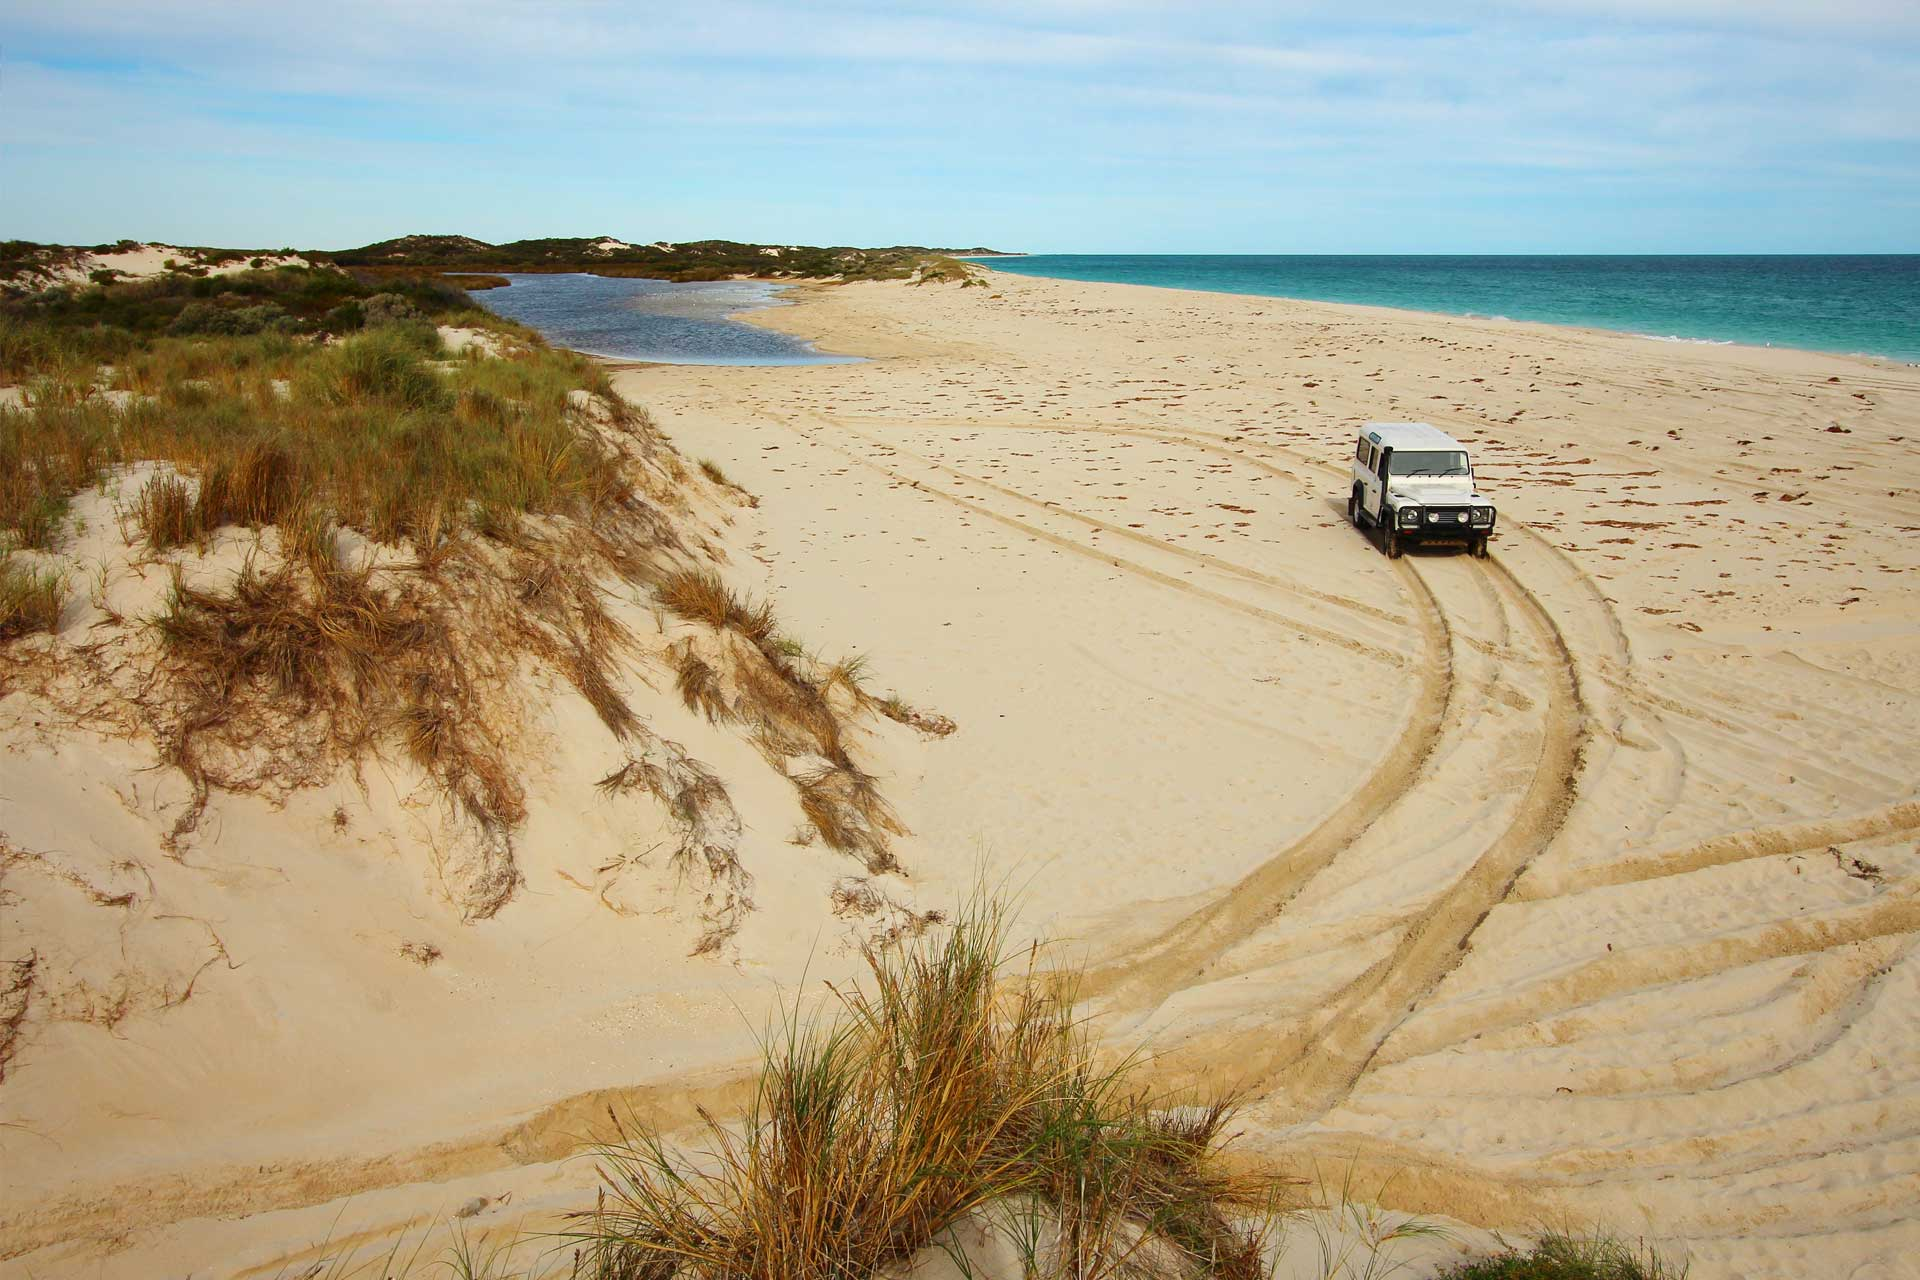 Jeep on Beach in Australia